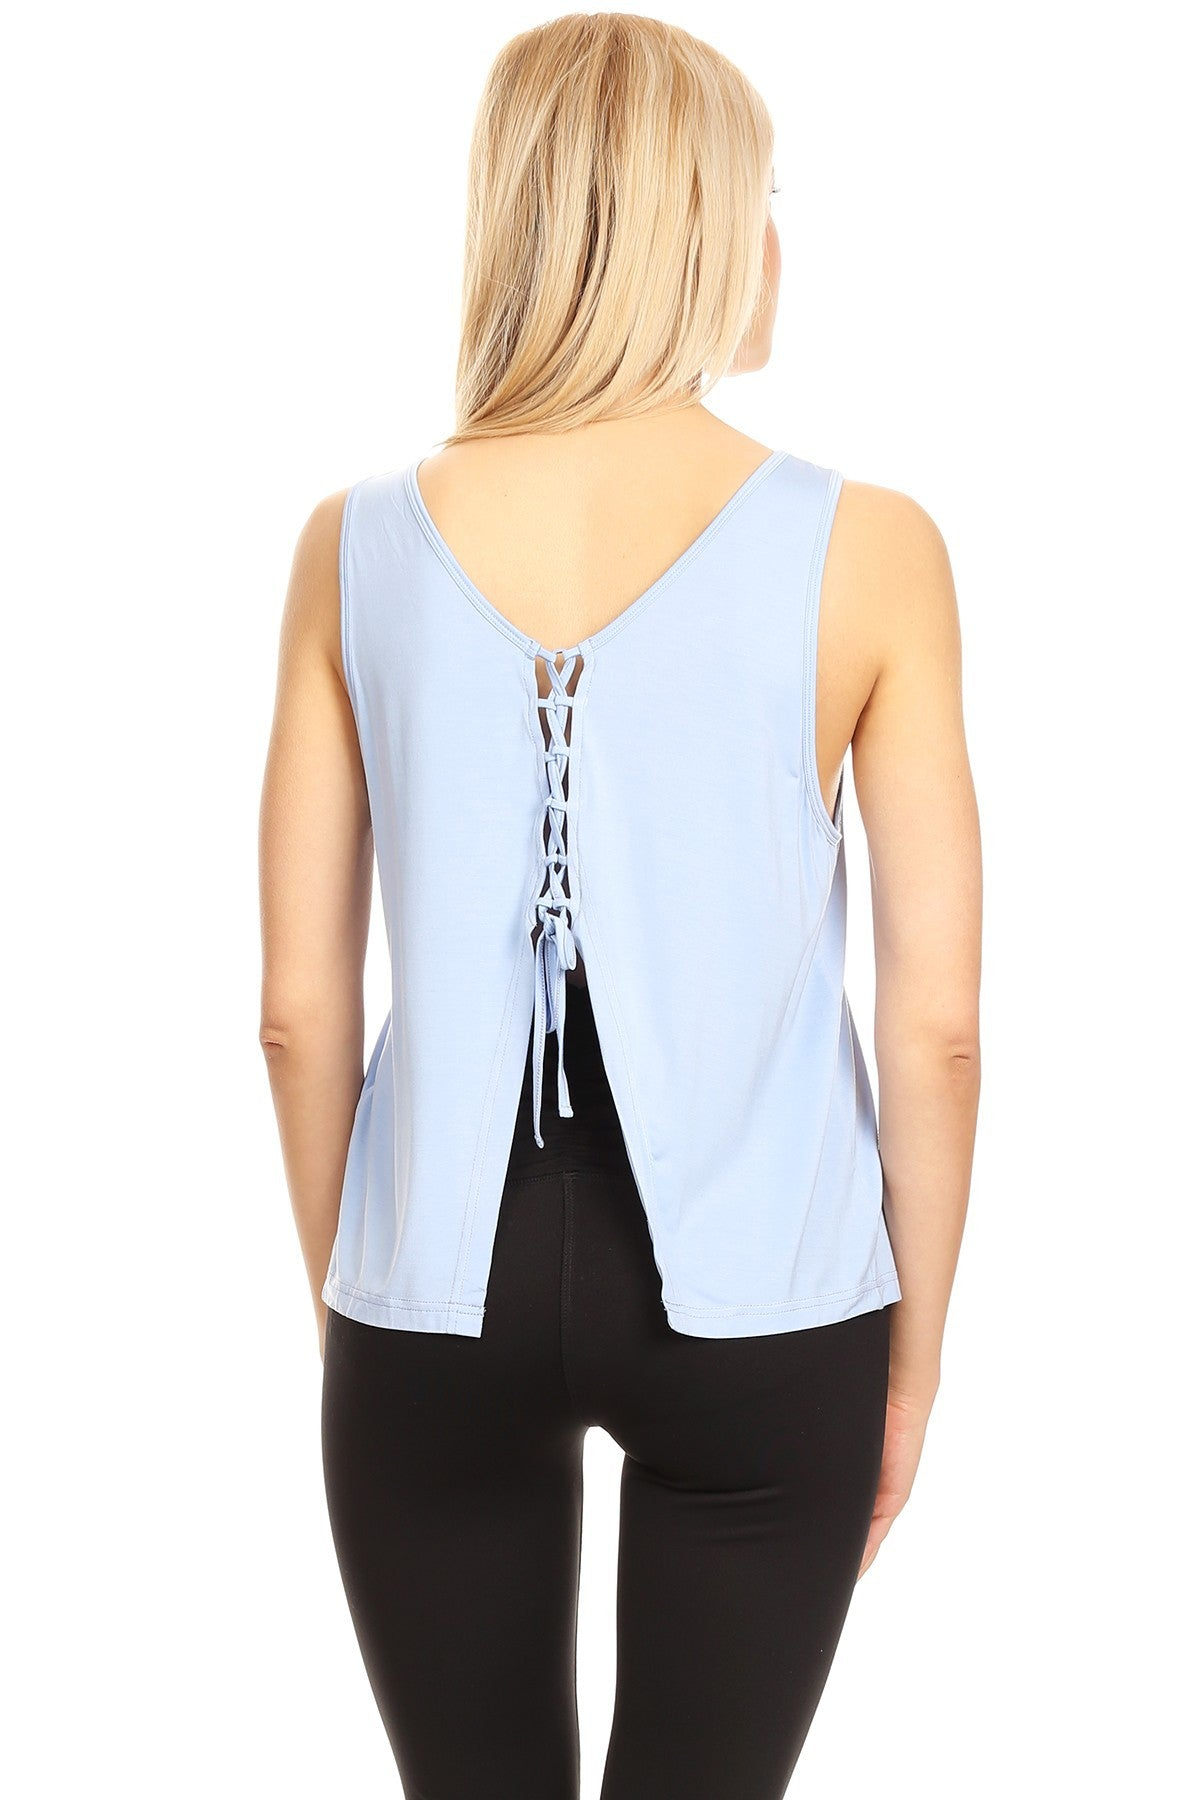 Womens Sleveeless Soft Tank Top With A Butterfly Back Cut Out - moove4fitness